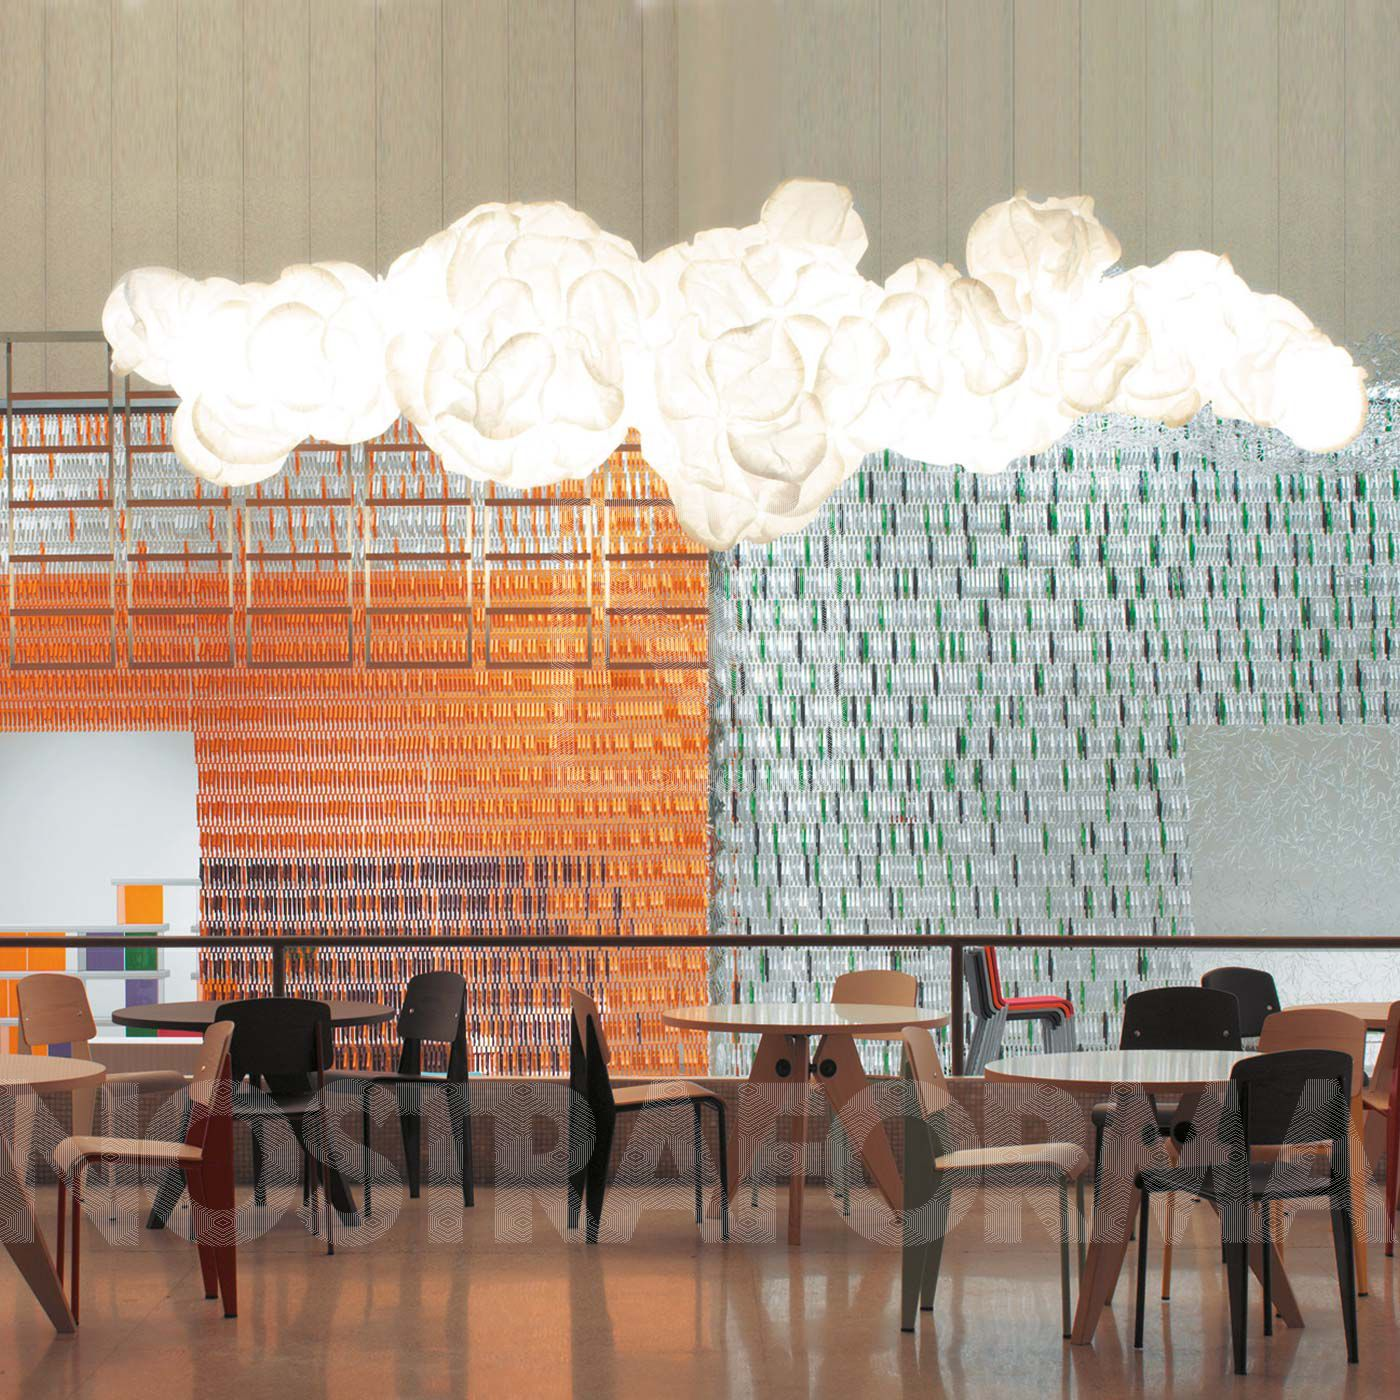 10 Exquisite Pendant Lamp Designs For The Dining Area